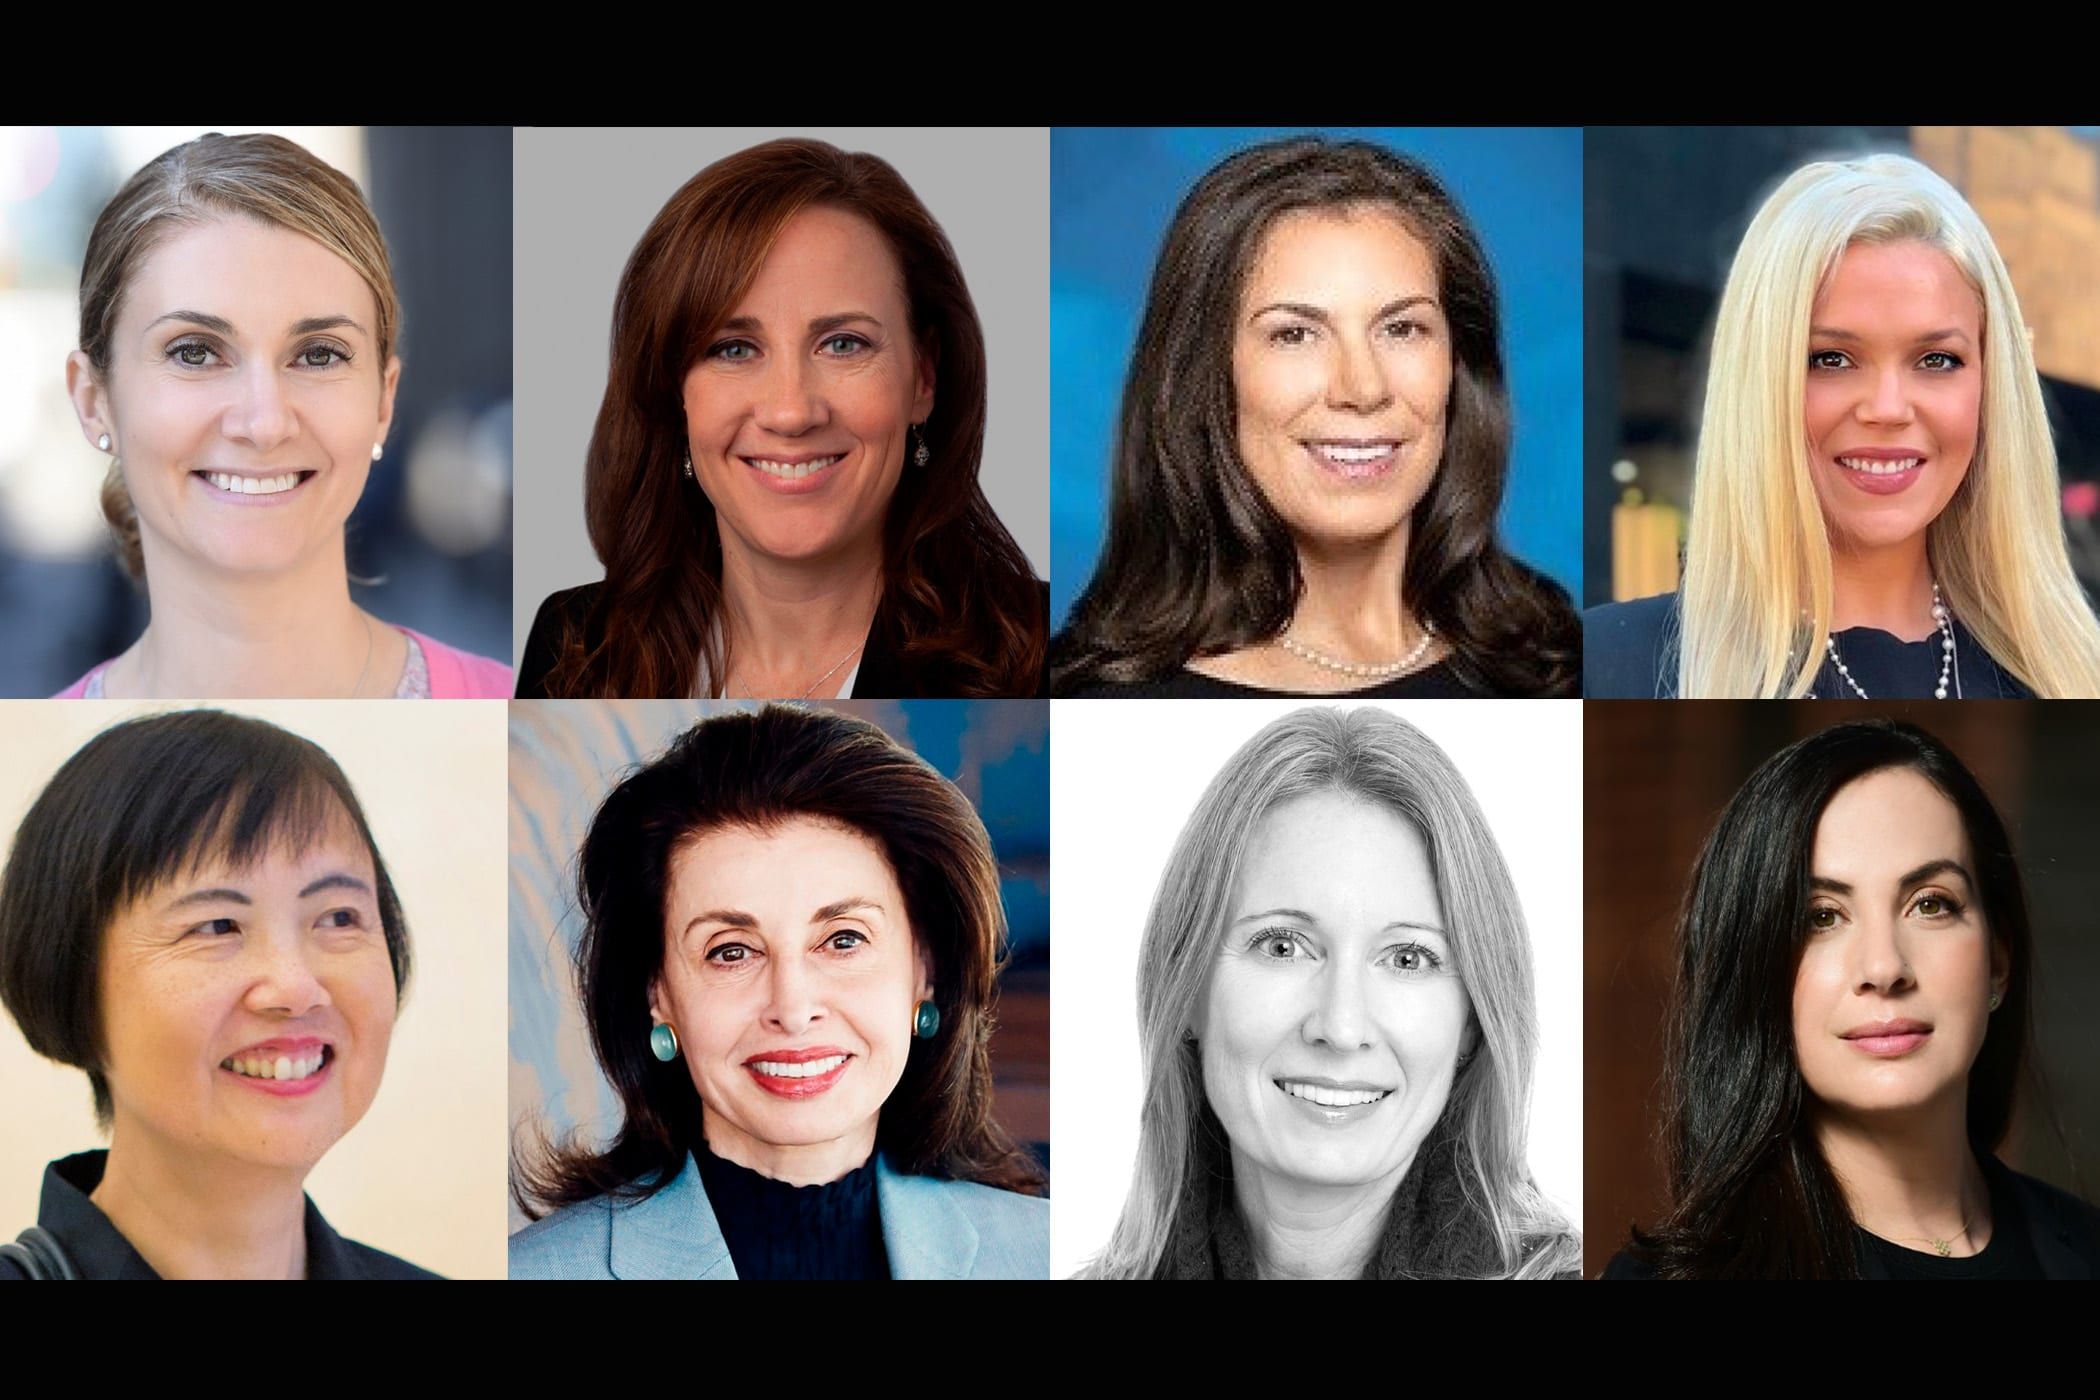 Women Panel 4Award 2 Top Female CRE Pros on the Future of Women in the Industry